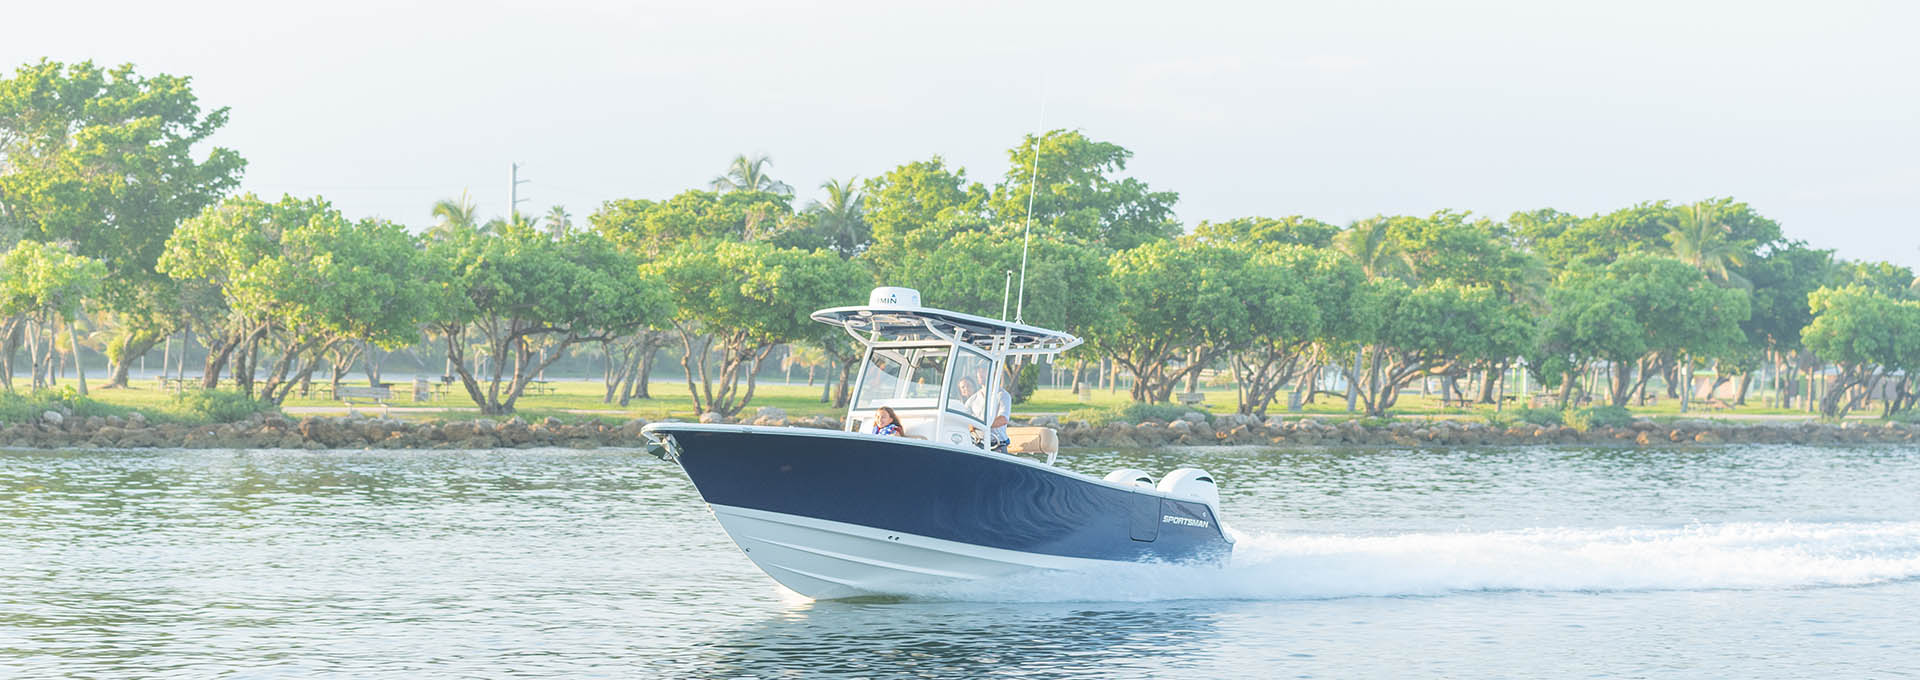 Heritage 251 Center Console Features Sportsman Boats Led Control Products Lectrotab Electromechanical Trim Tab Systems